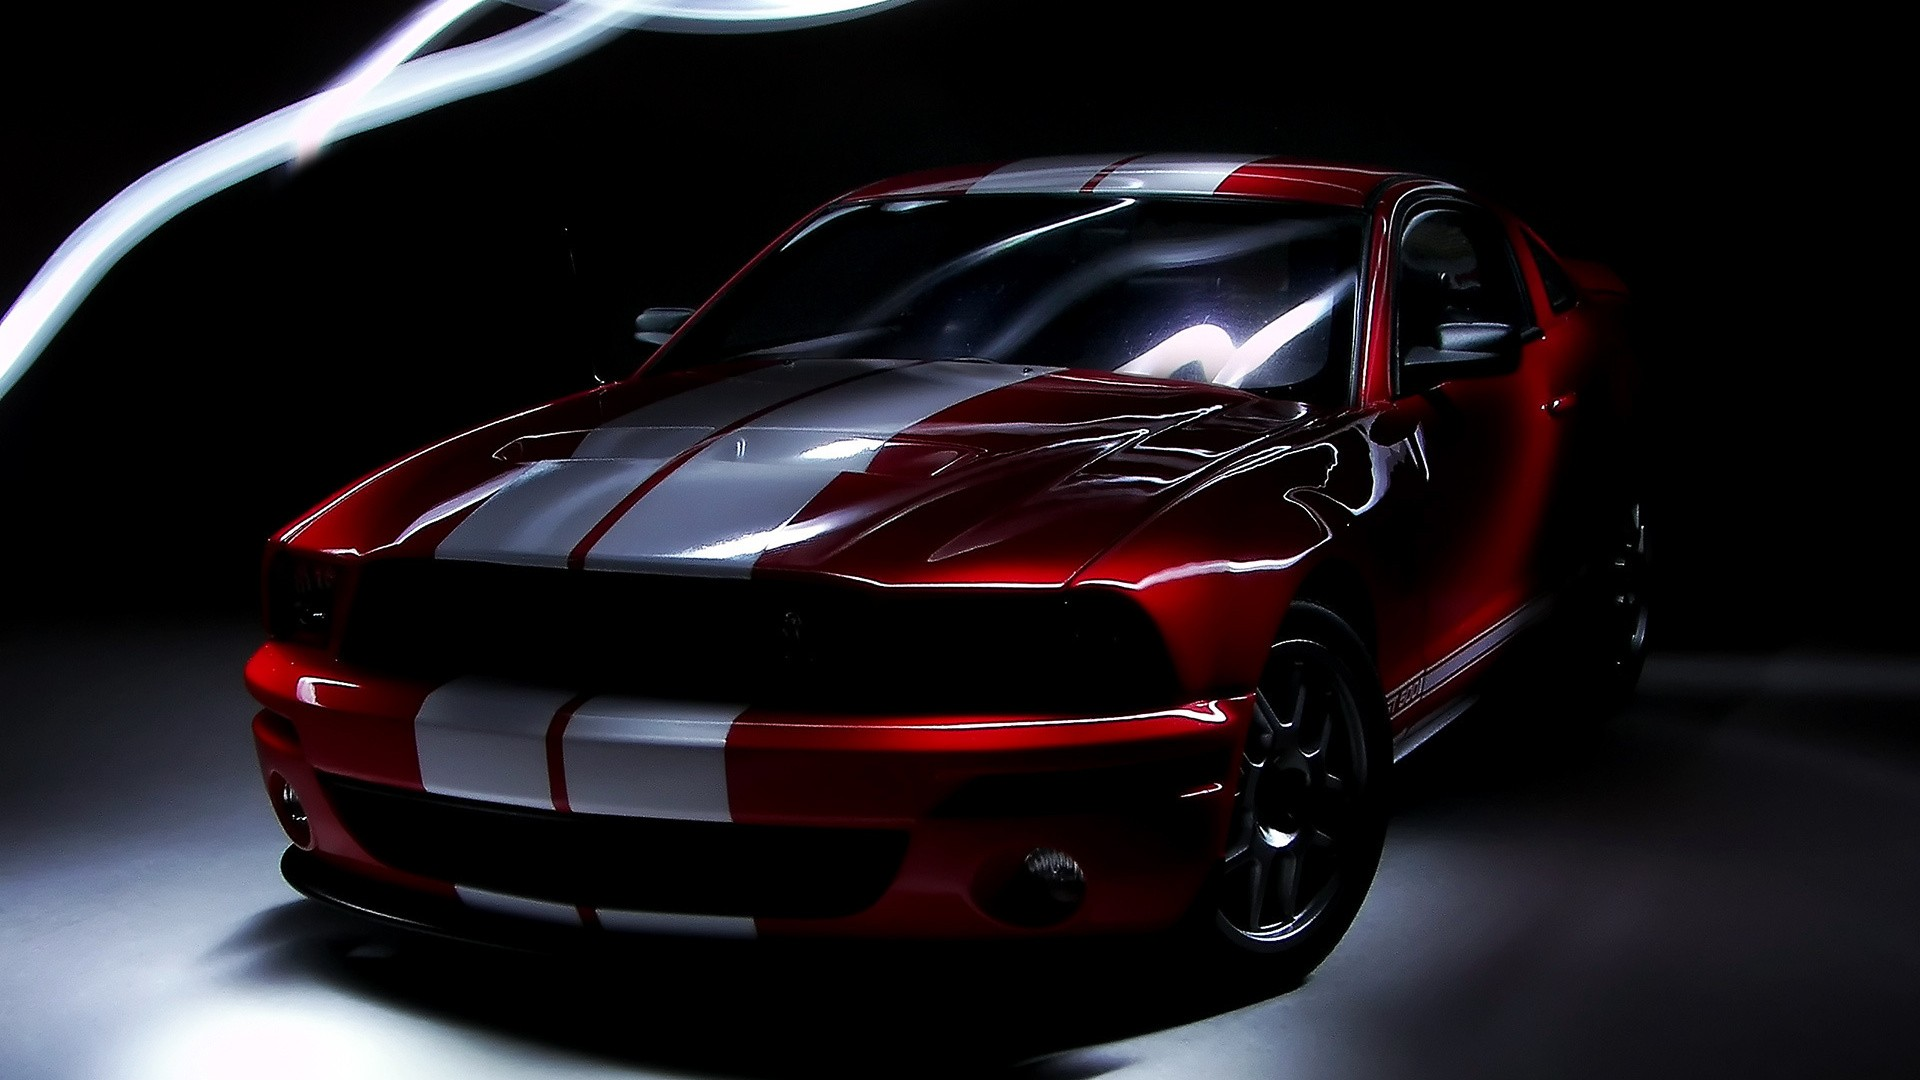 cars vehicles ford mustang shelby gt500 desktop 1920x1080 hd wallpaper 1920x1080